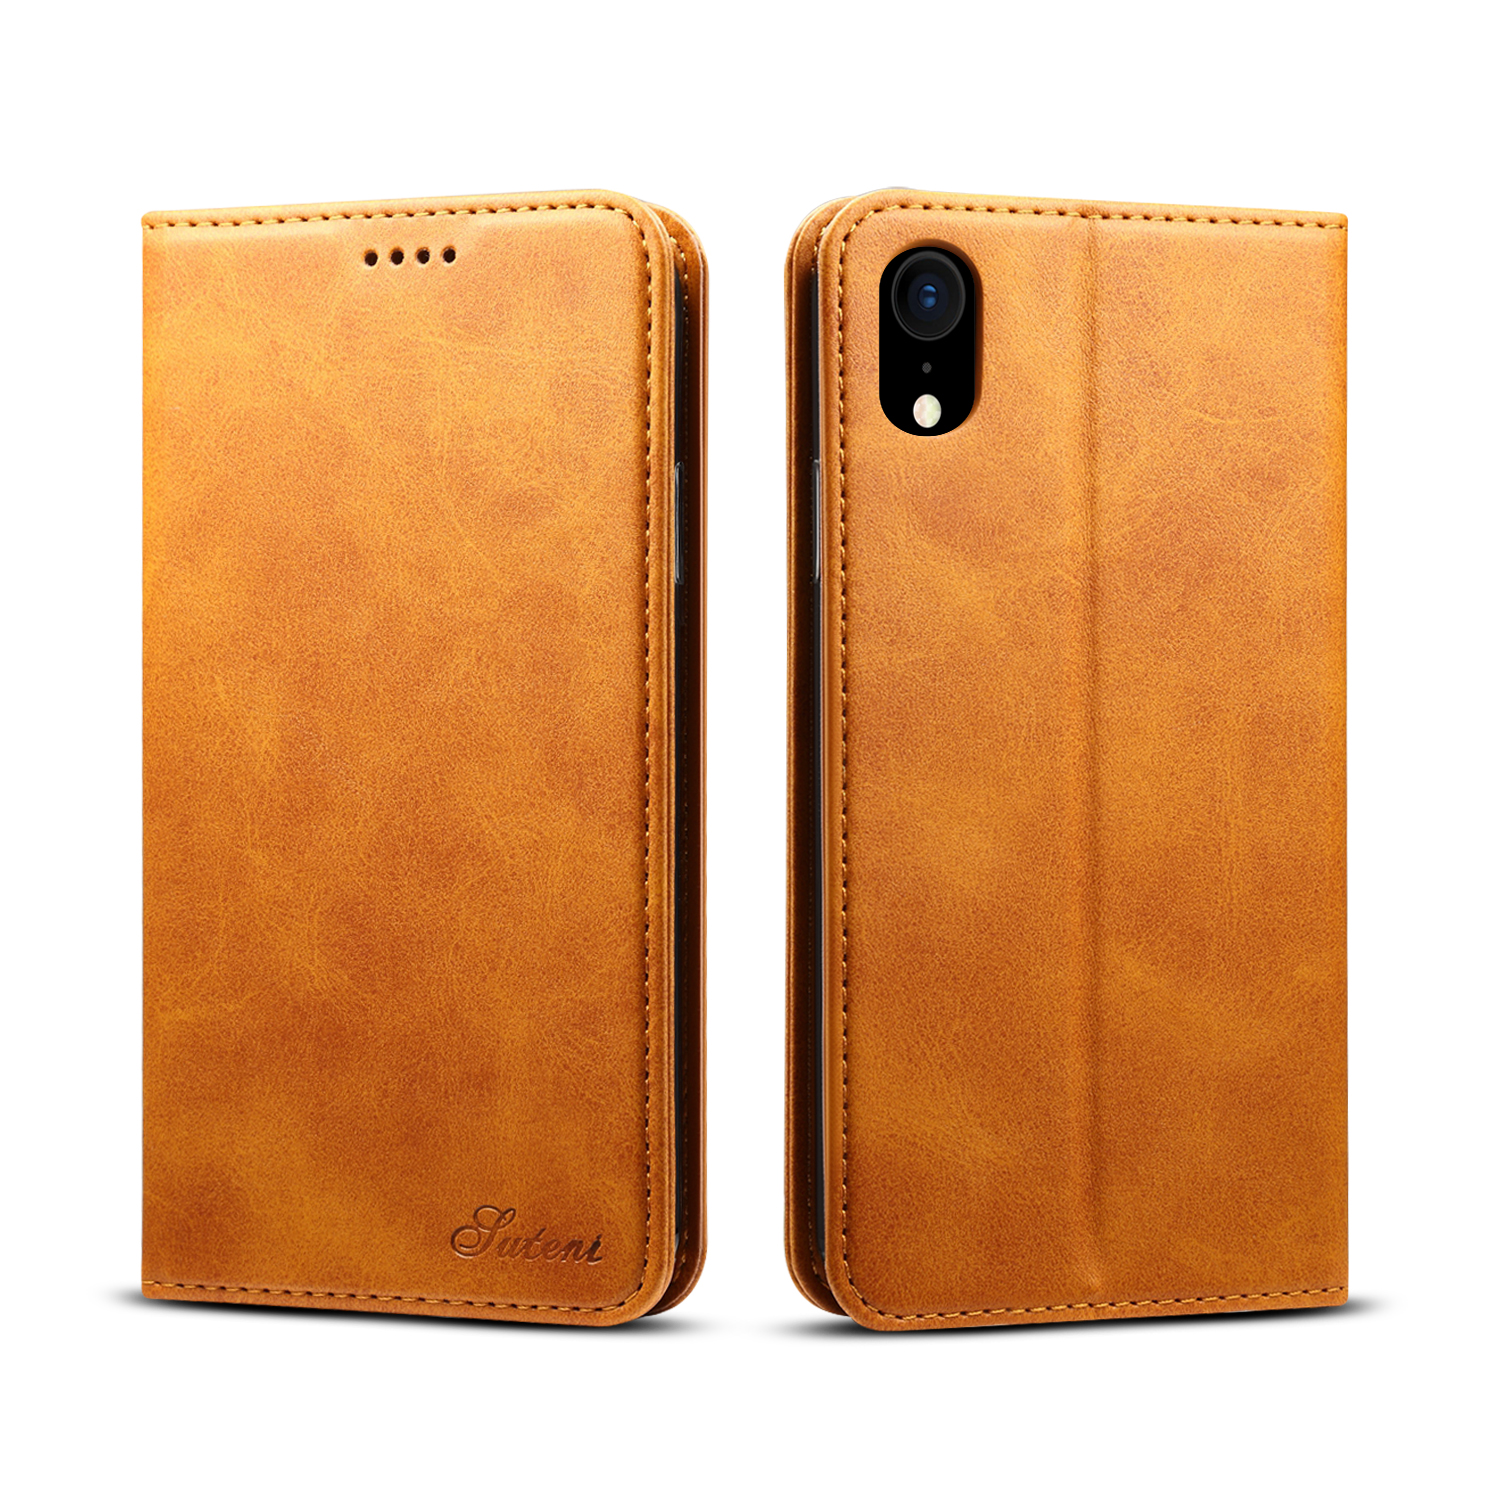 Bakeey Protective Case For iPhone XR Magnetic Flip